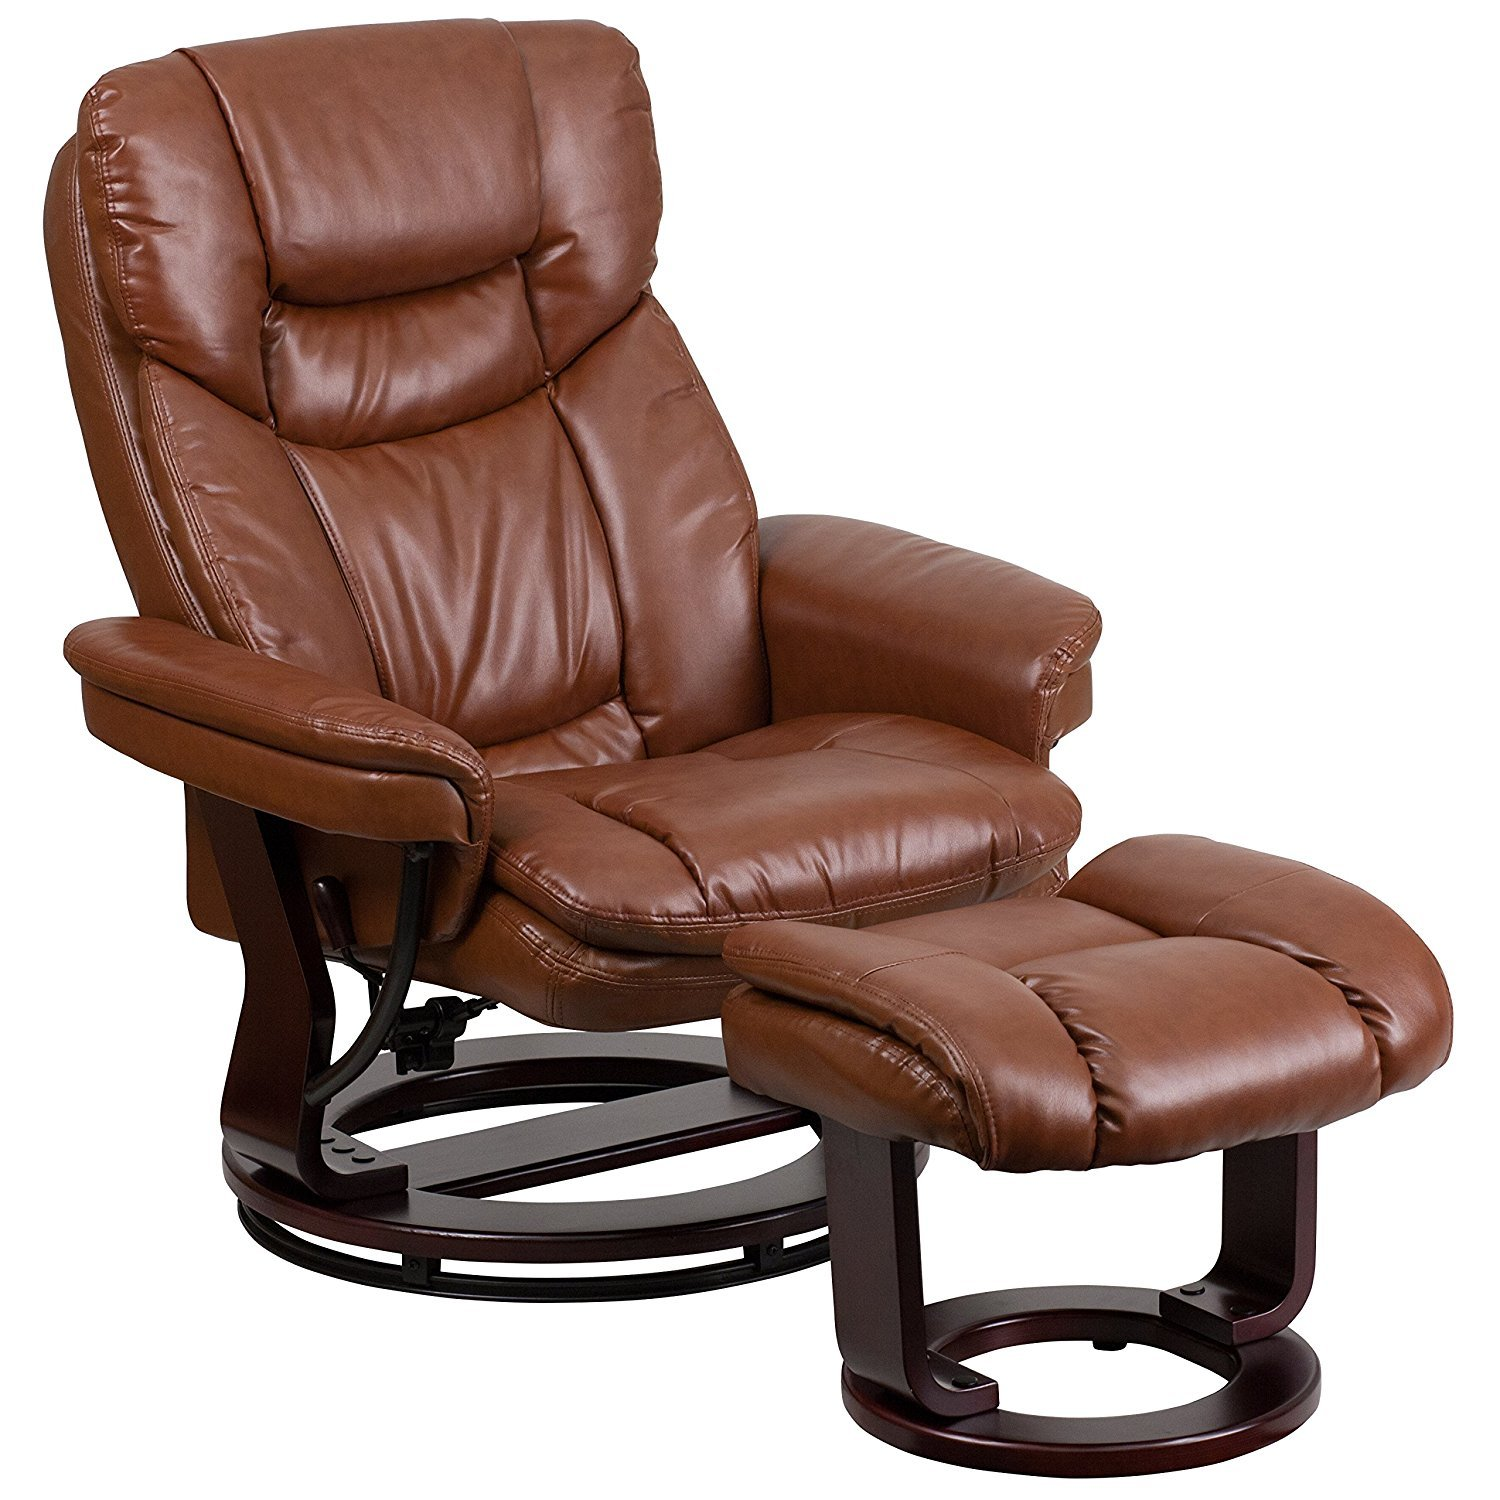 Leather Living Room Chair Leather Swivel Chairs For Living Room Home Furniture Design